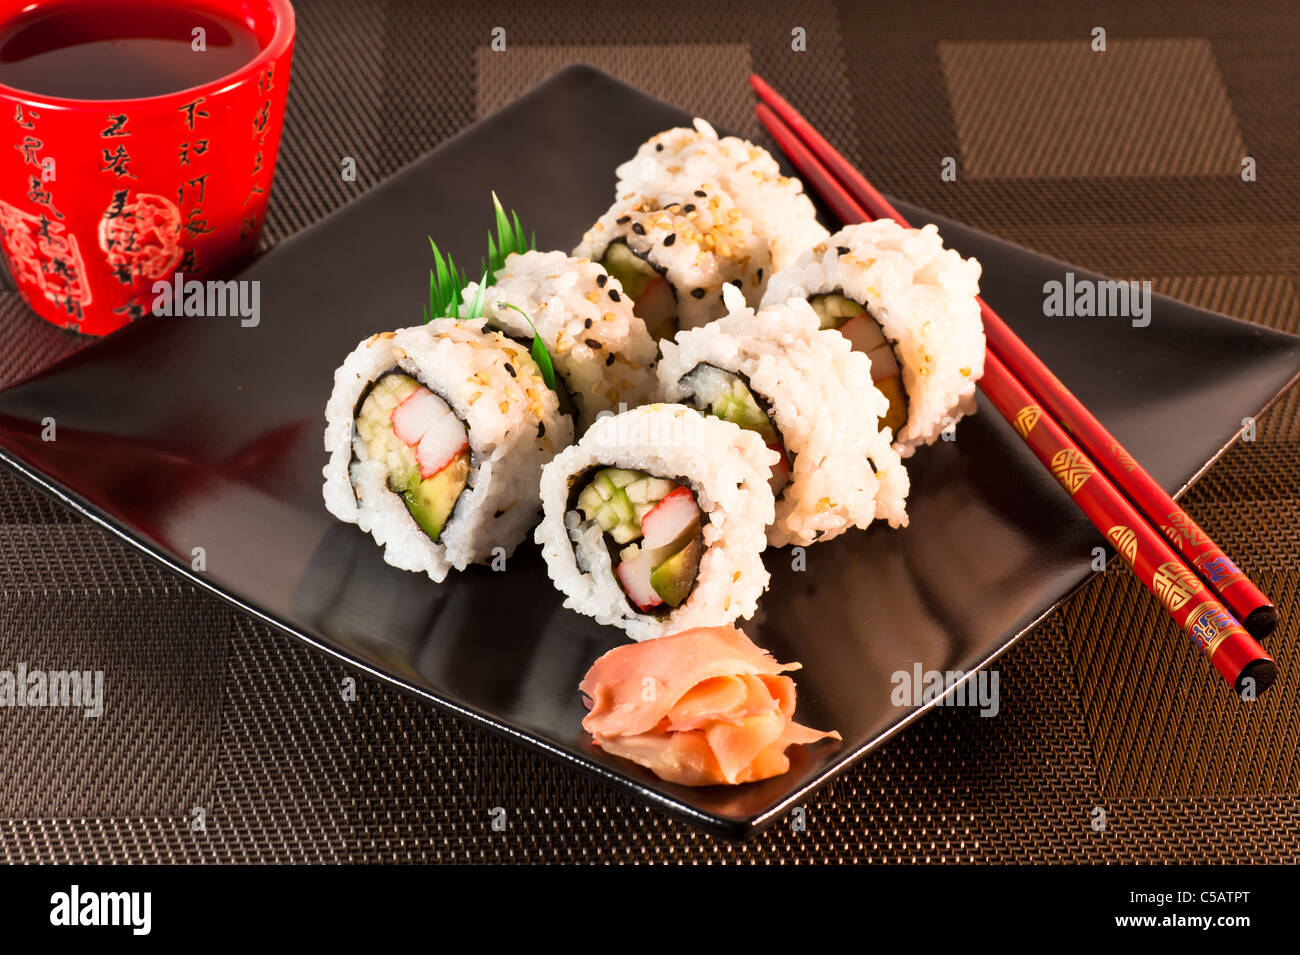 A selection of California Sushi Rolls. - Stock Image